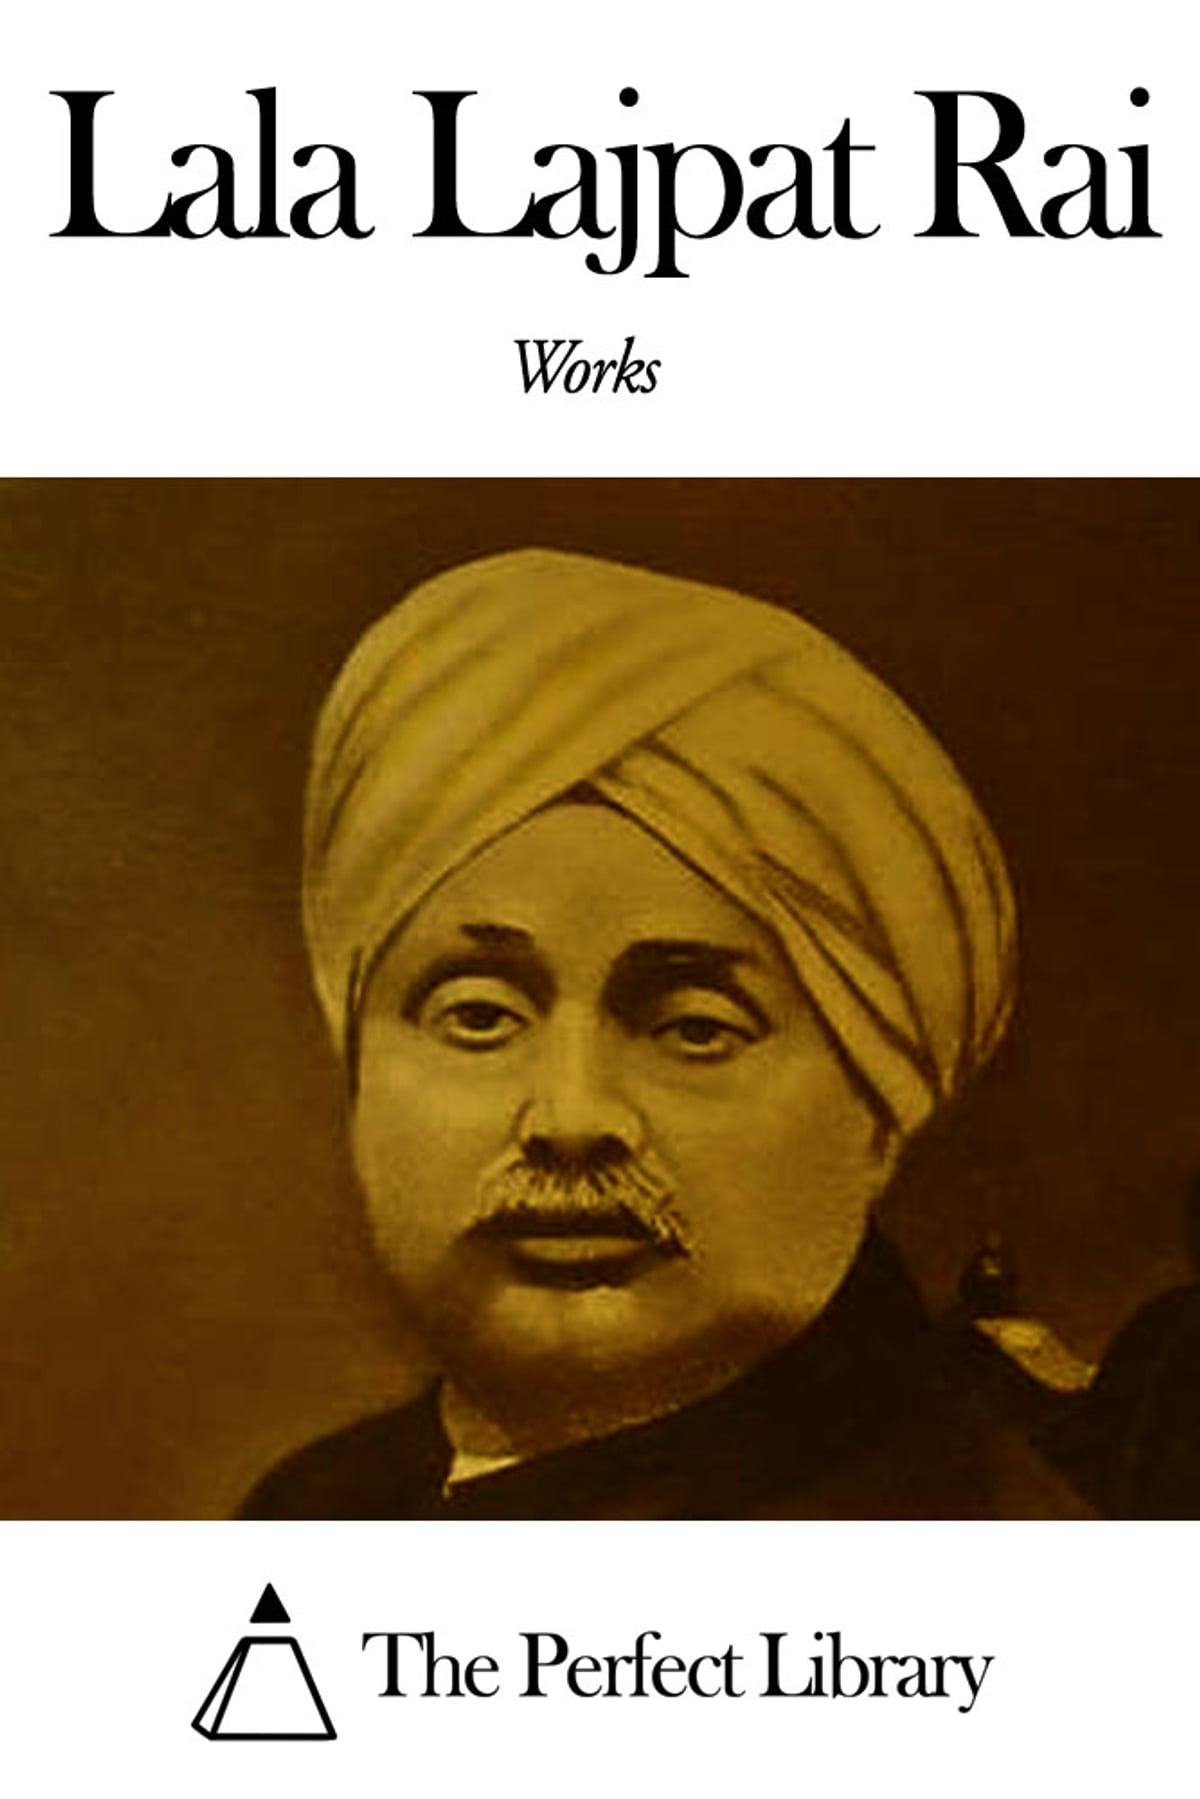 Works of Lala Lajpat Rai ebook by Lala Lajpat Rai - Rakuten Kobo